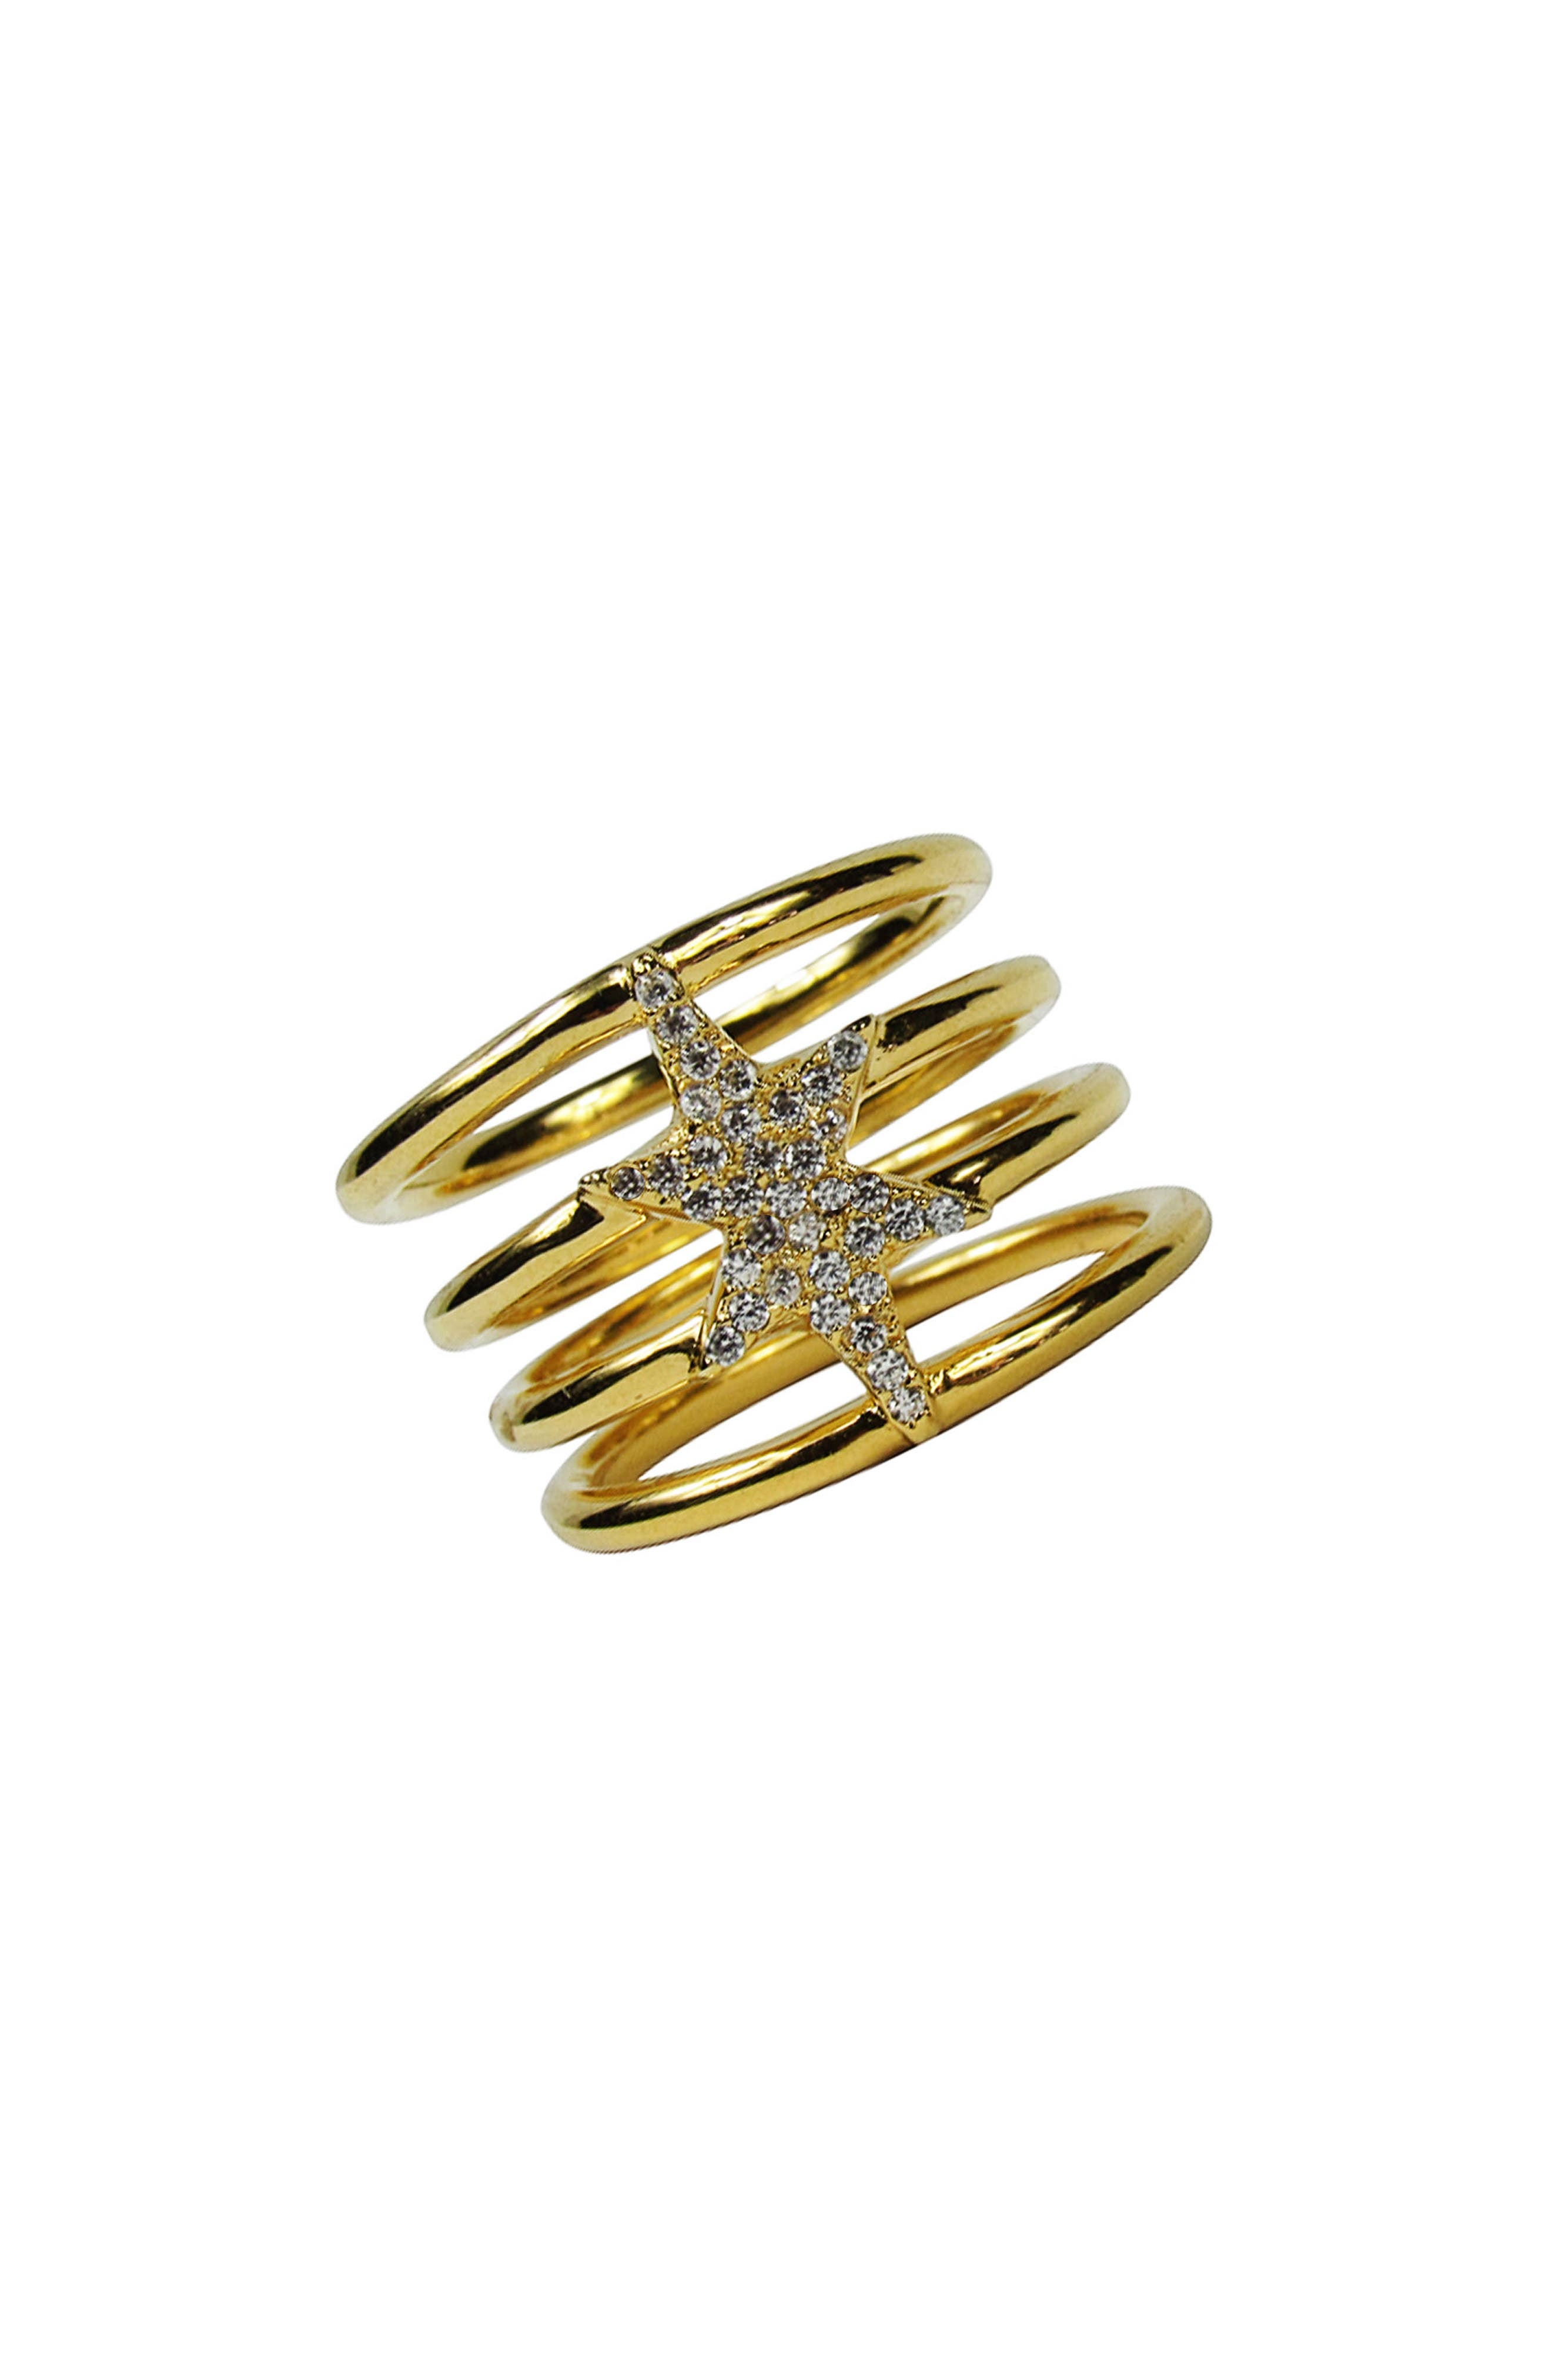 Main Image - Jules Smith North Star Statement Ring